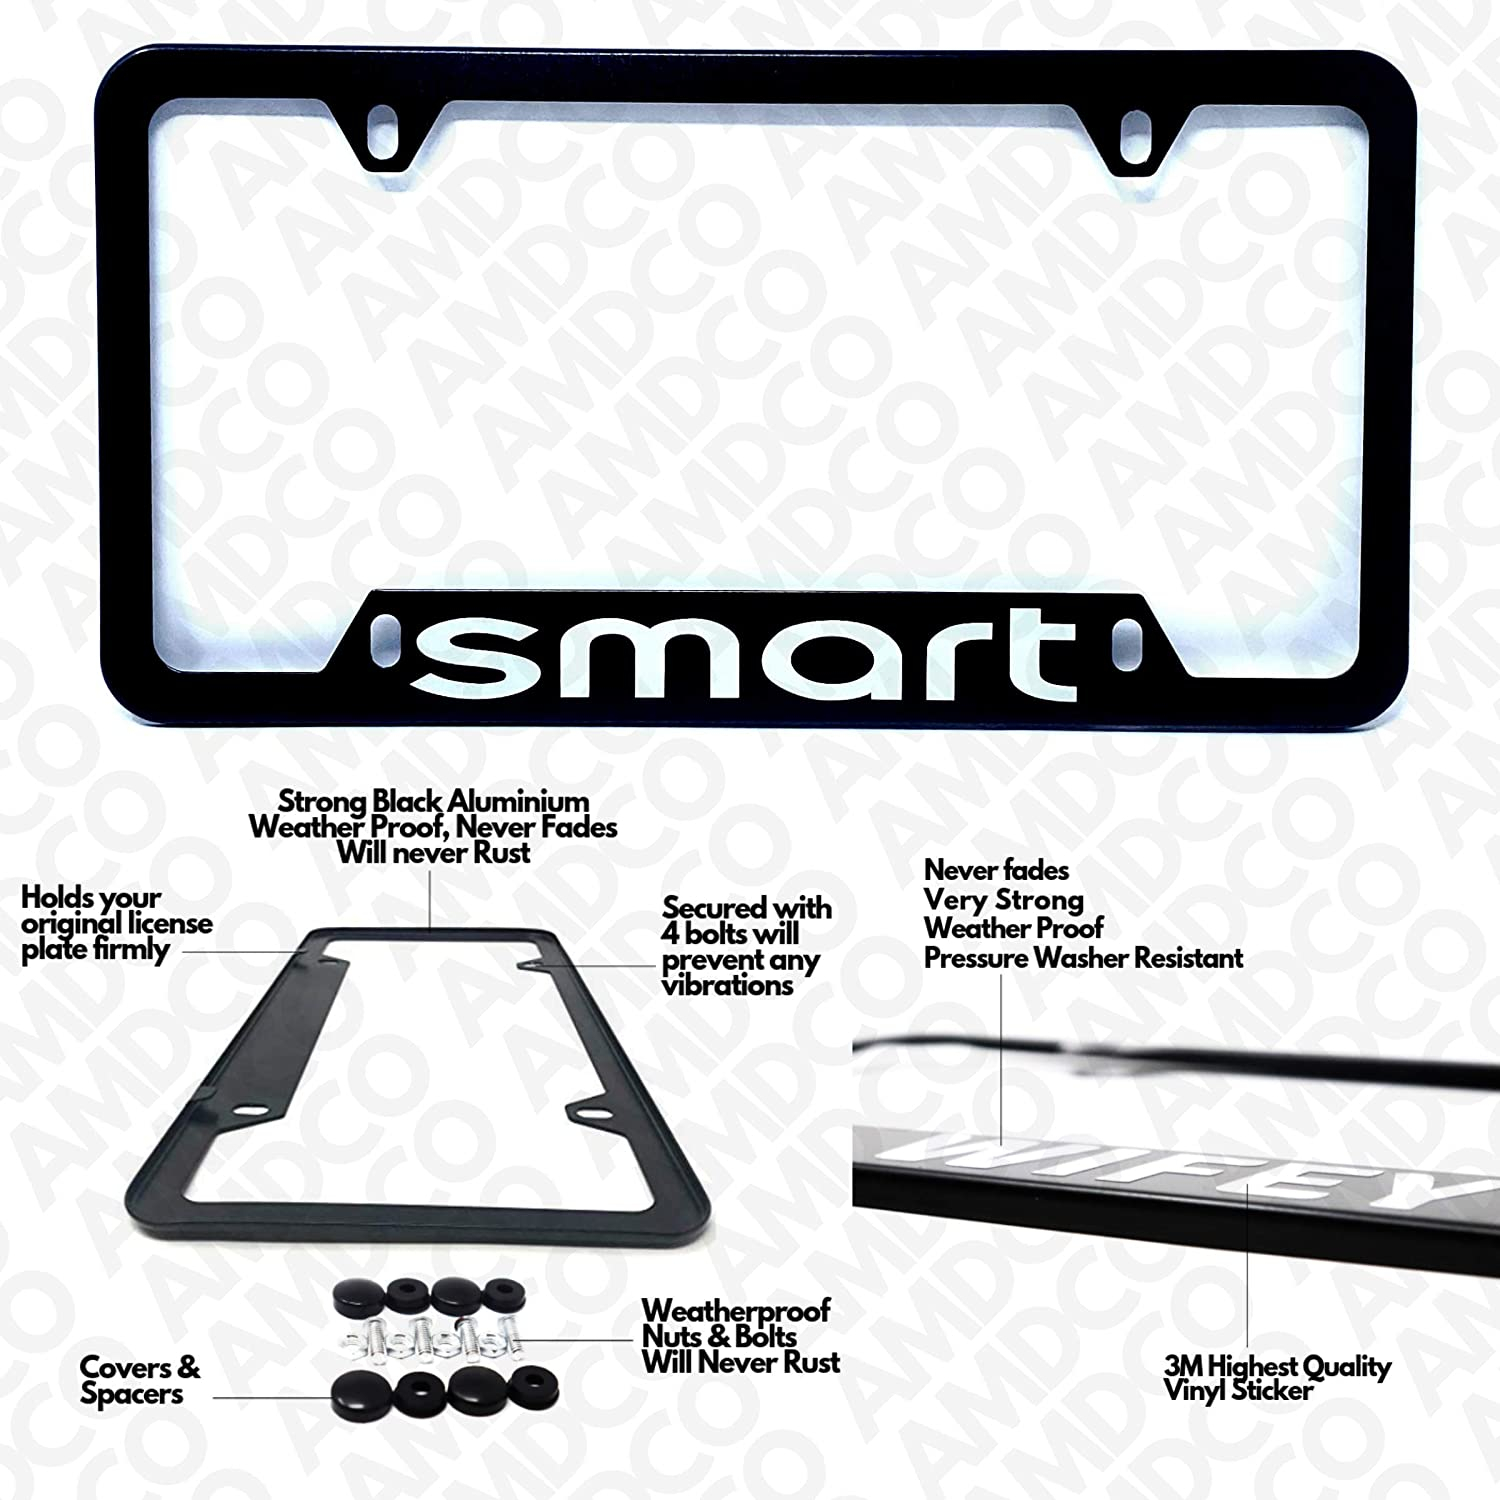 Pack of 1 Black License Plate Cover Holder Frame Badge Stickers Decals with Strong 3M Includes Instructions Measure Before Purchase Fitment fit for fortwo forspeed formore forfour AMD